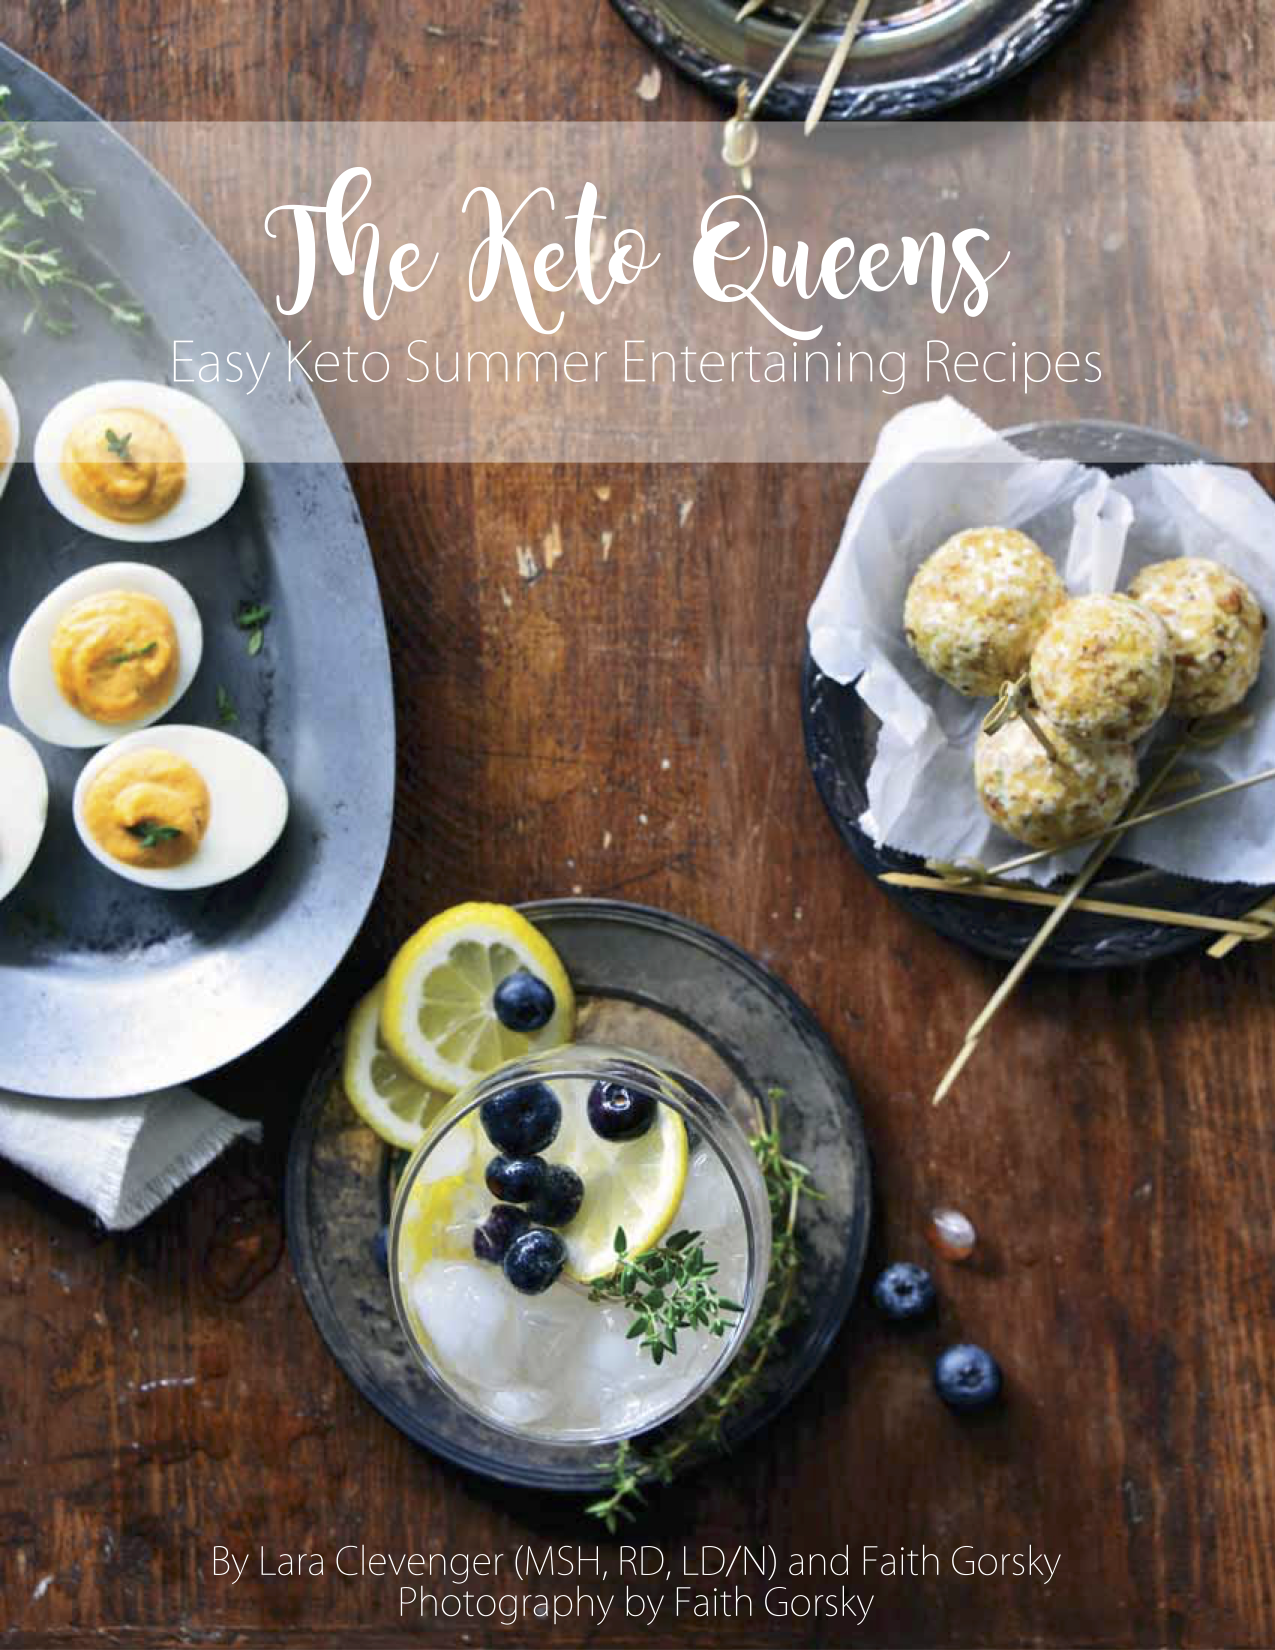 Easy Keto Summer Entertaining Recipes image with deviled eggs, and a cocktail